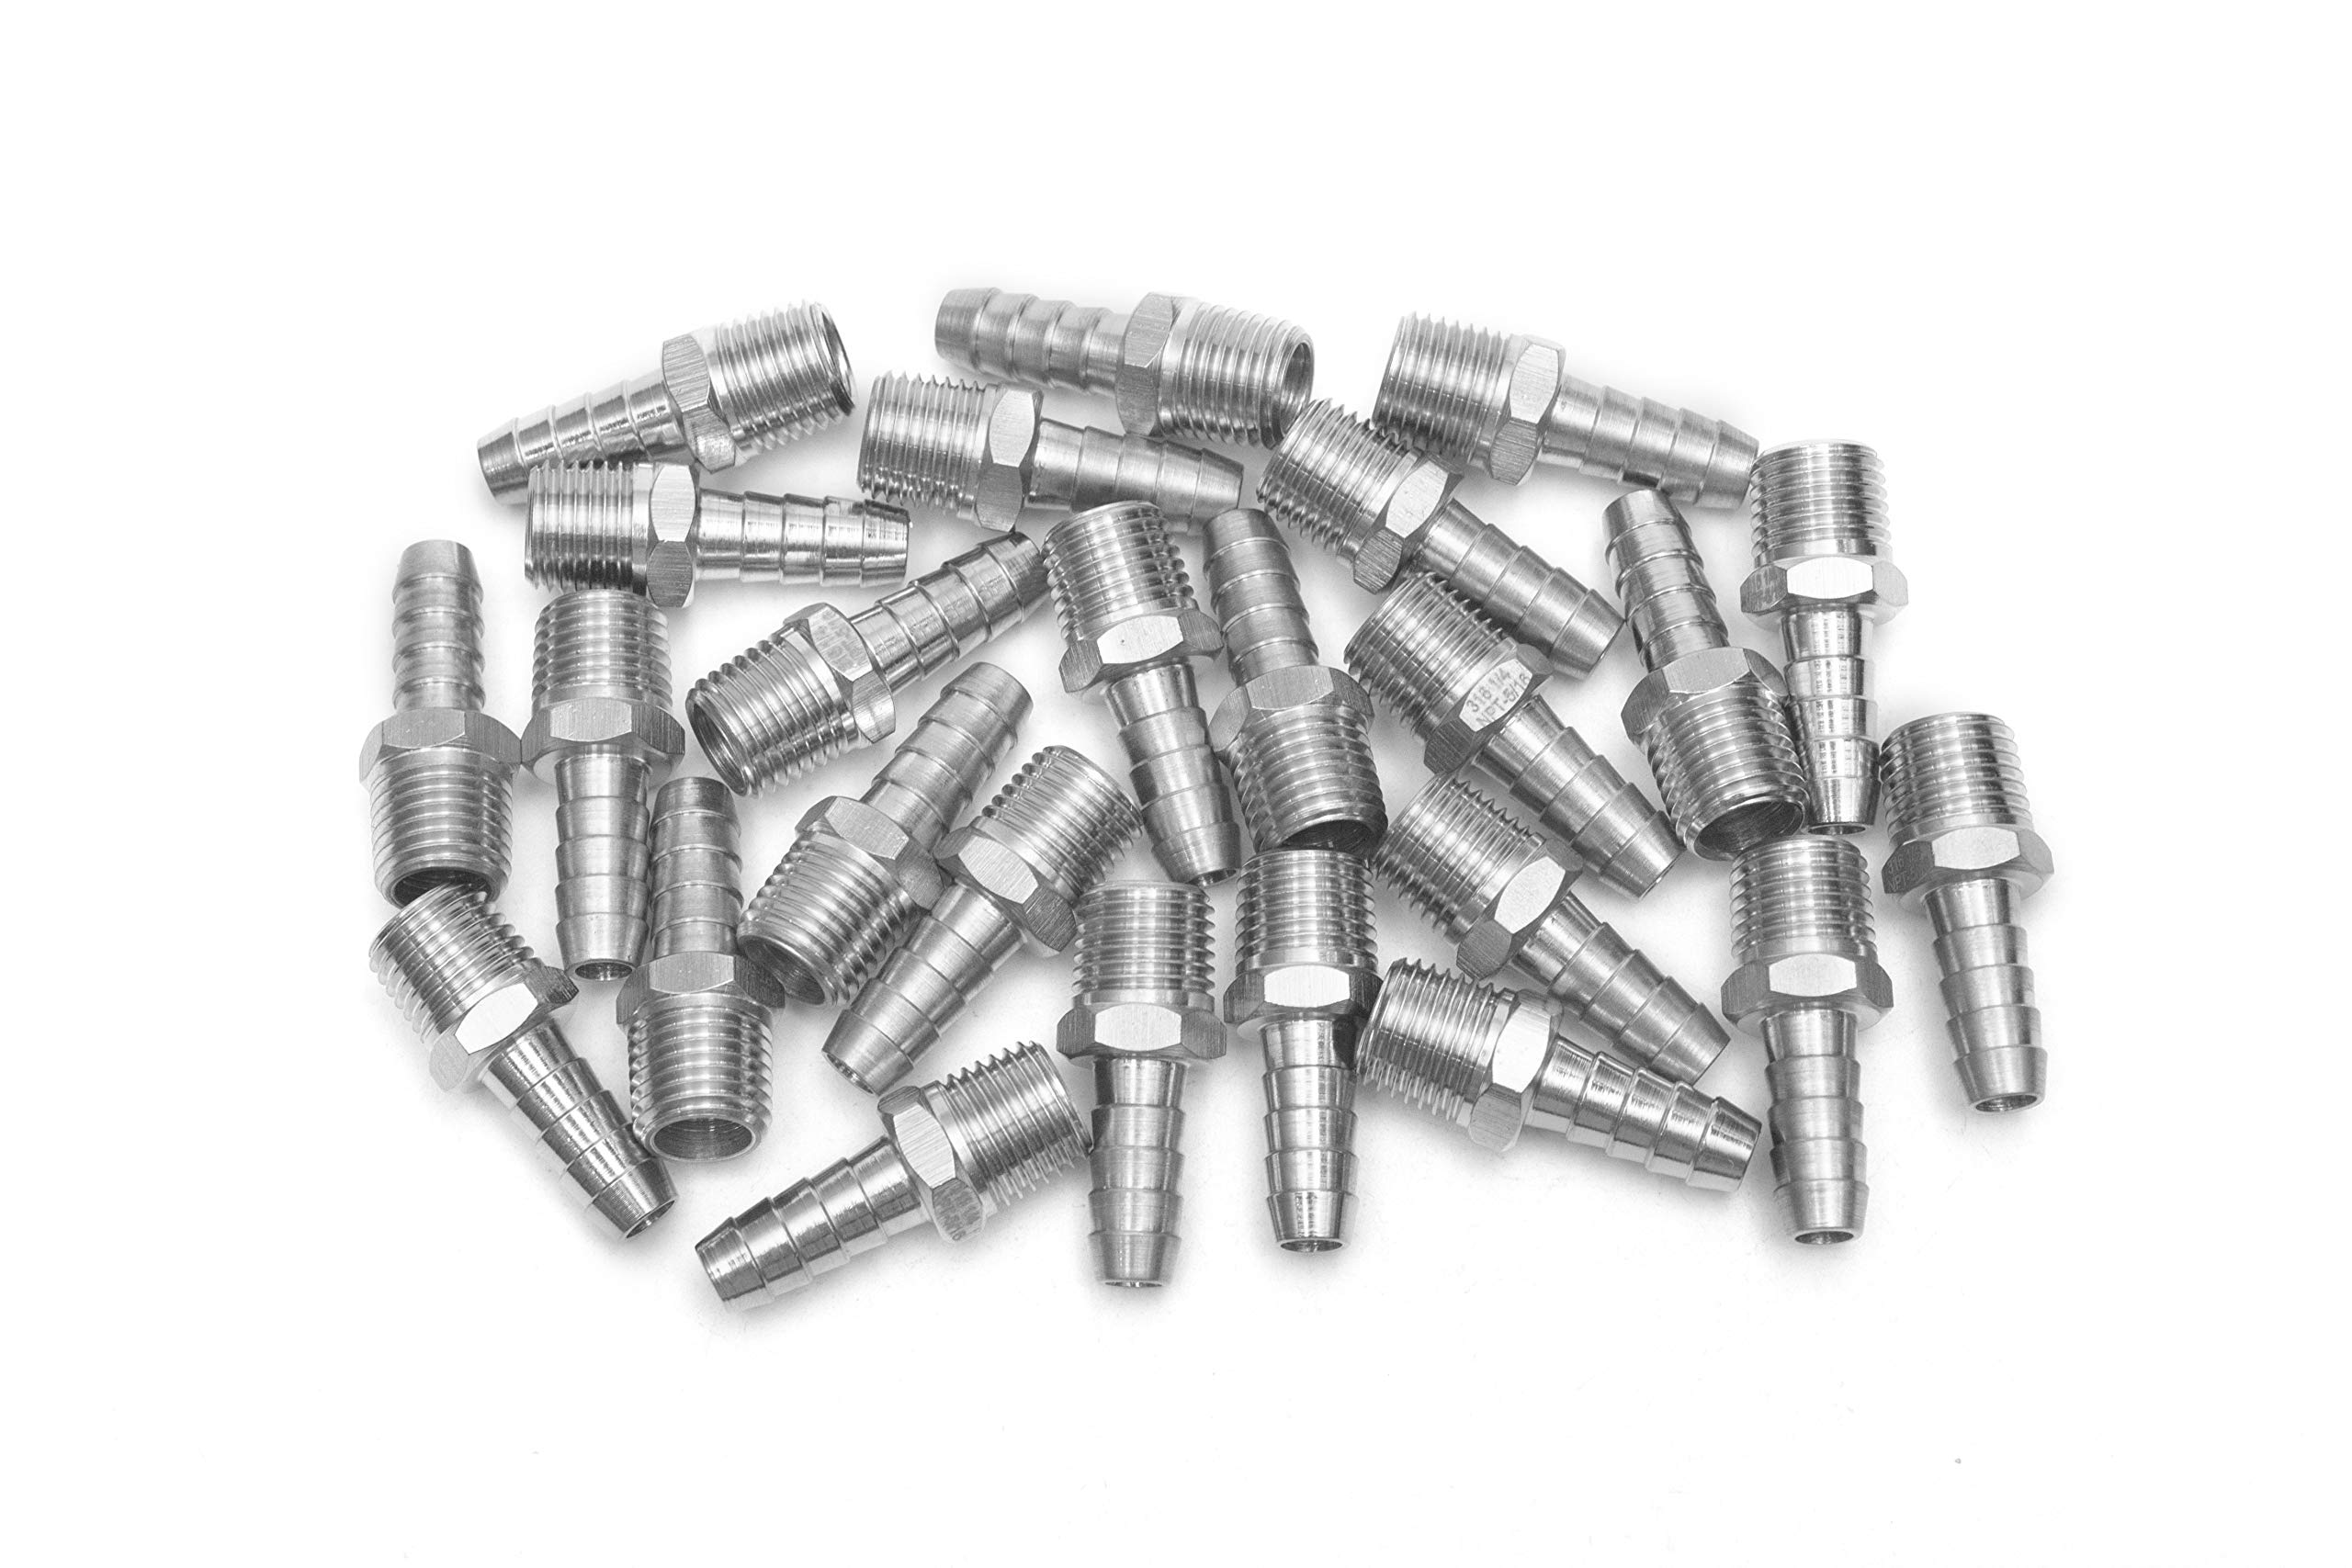 LTWFITTING Bar Production Stainless Steel 316 Barb Fitting Coupler/Connector 5/16'' Hose ID x 1/4'' Male NPT Air Fuel Water (Pack of 25)